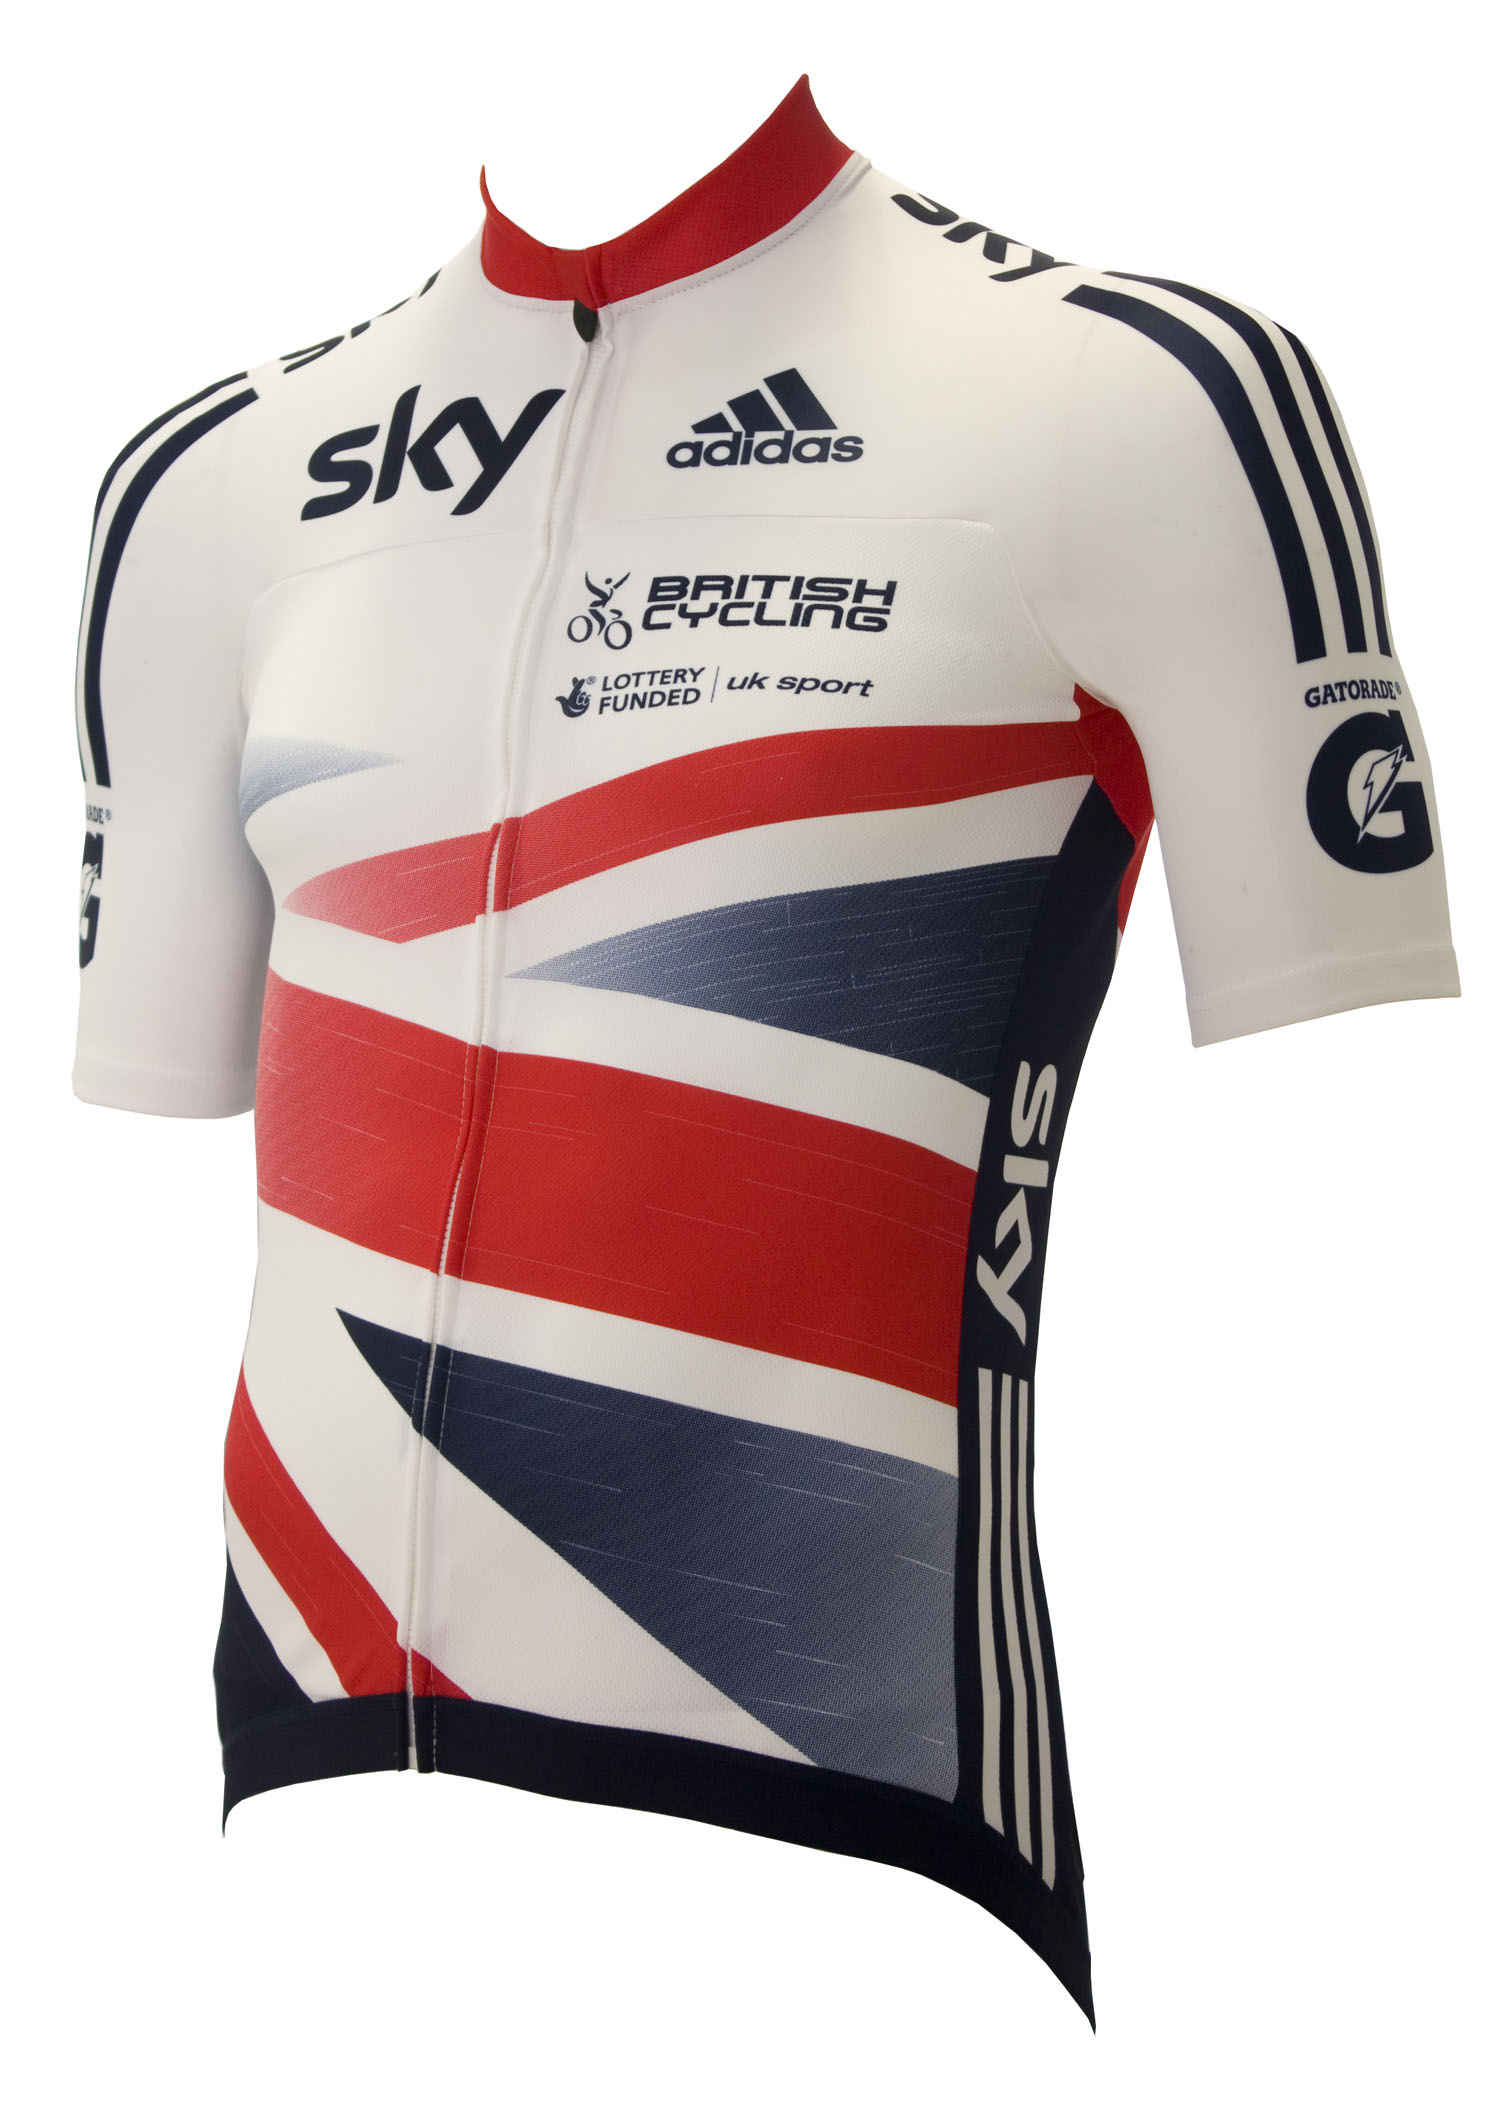 4b8d06c7b Following months of close work between adidas and British Cycling